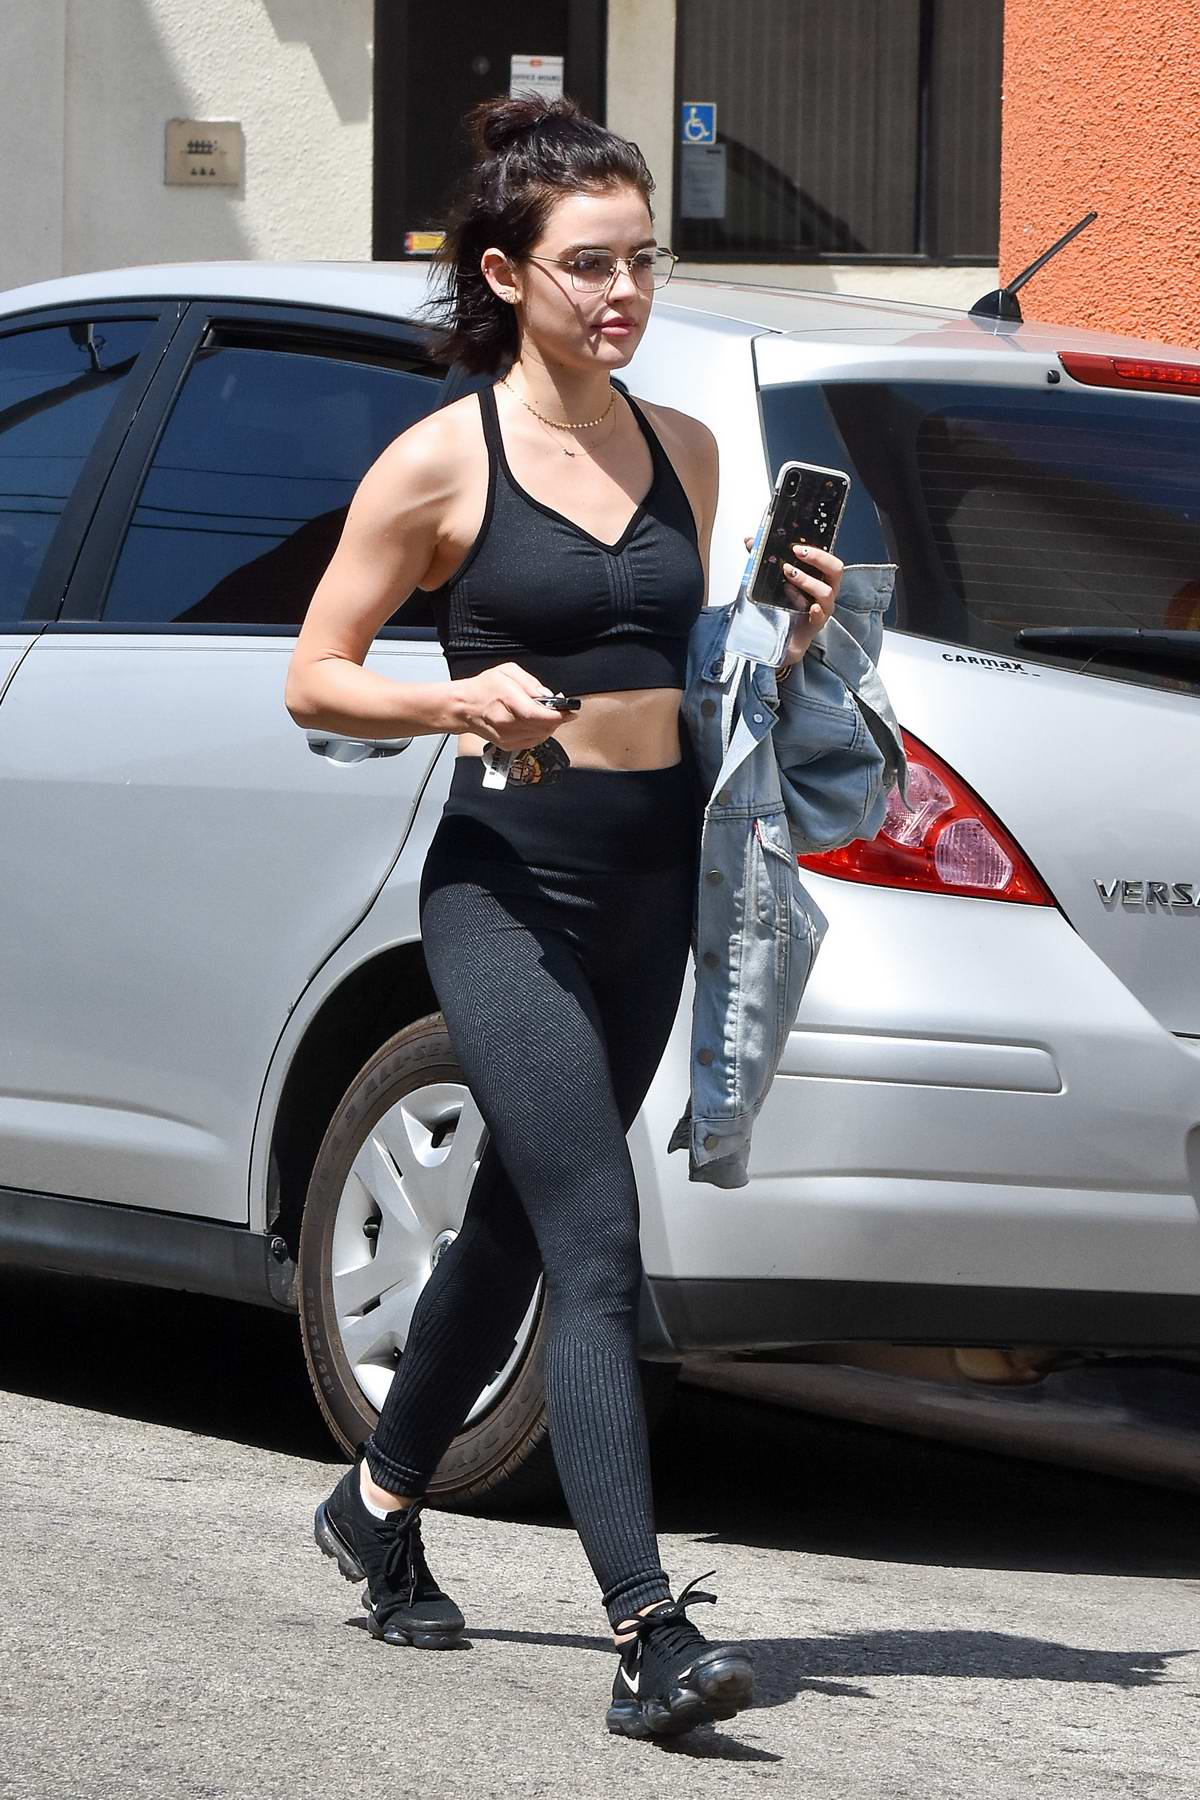 74904b1e9eb1d lucy hale heads out in a black sports bra and leggings after a workout  session at a gym in los angeles-010918_4